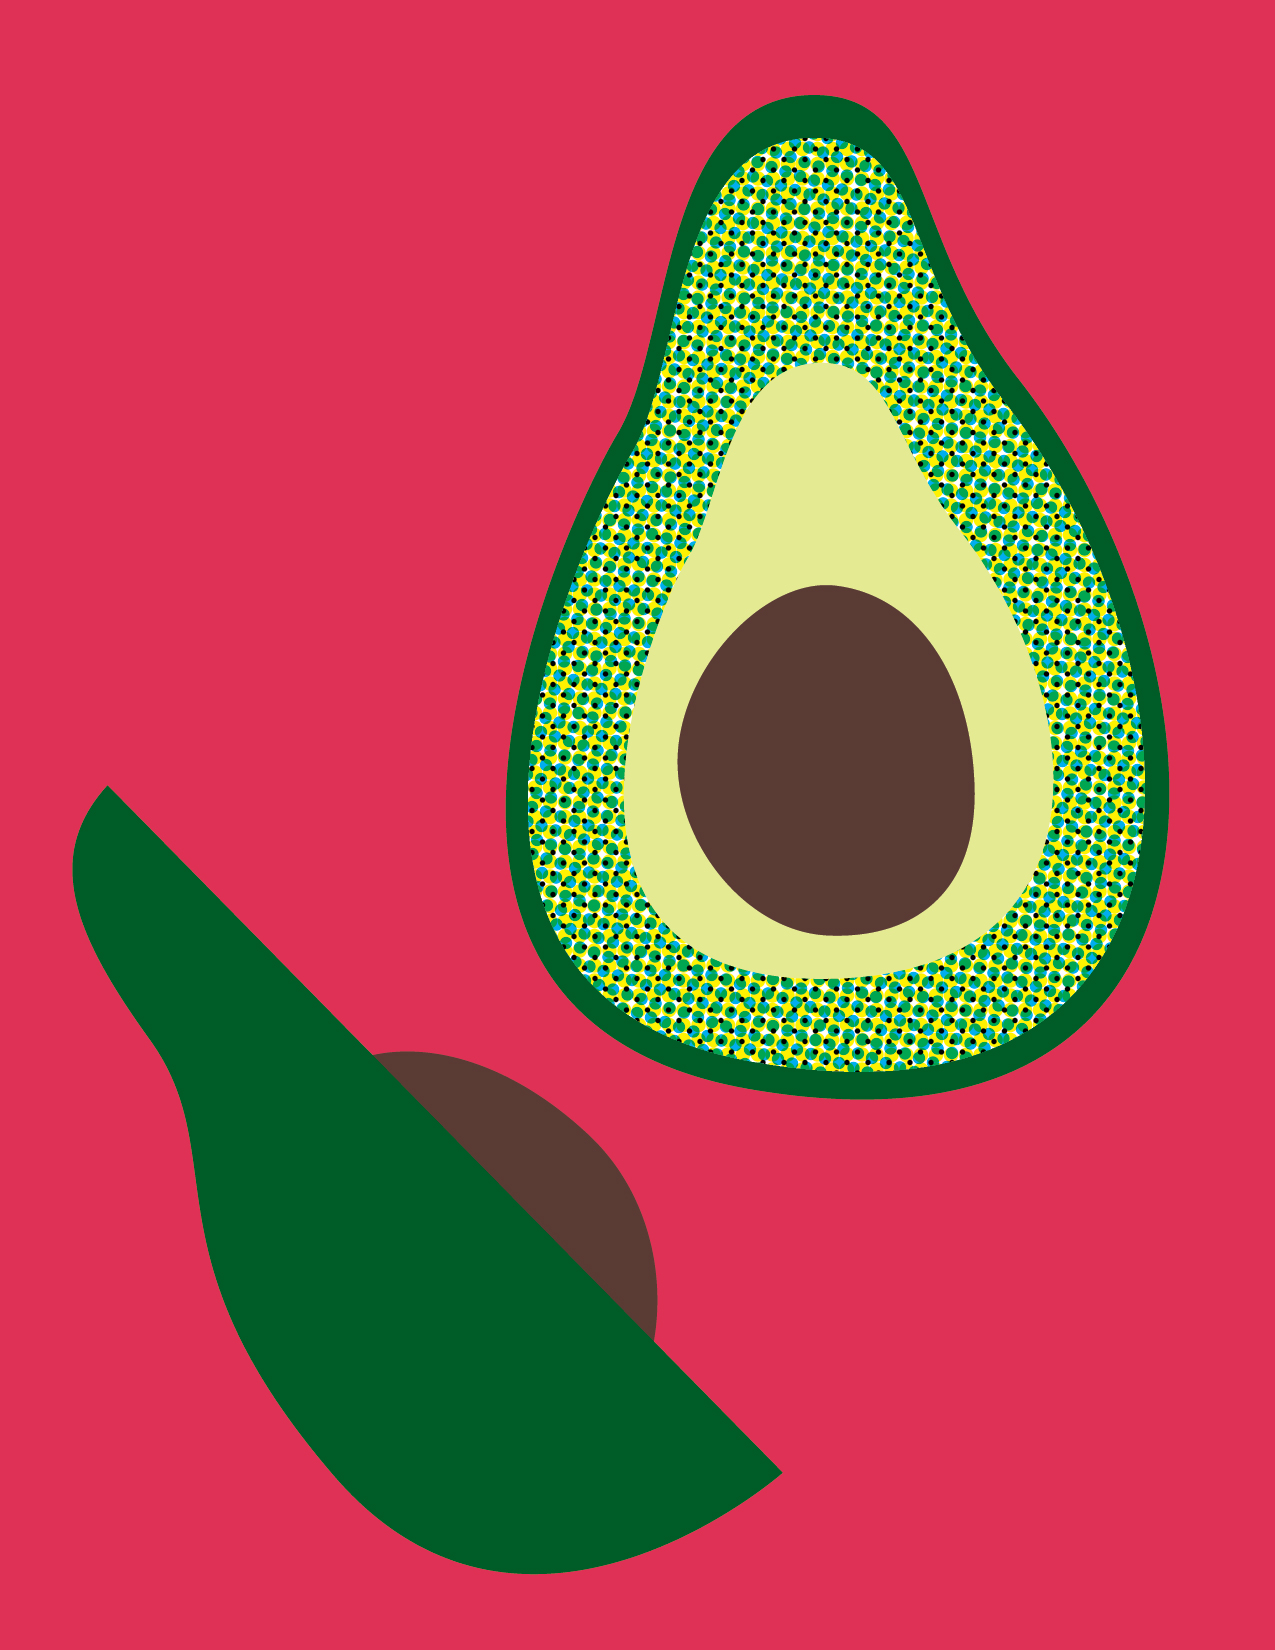 Avocados for Breakfast by Bryna Shields